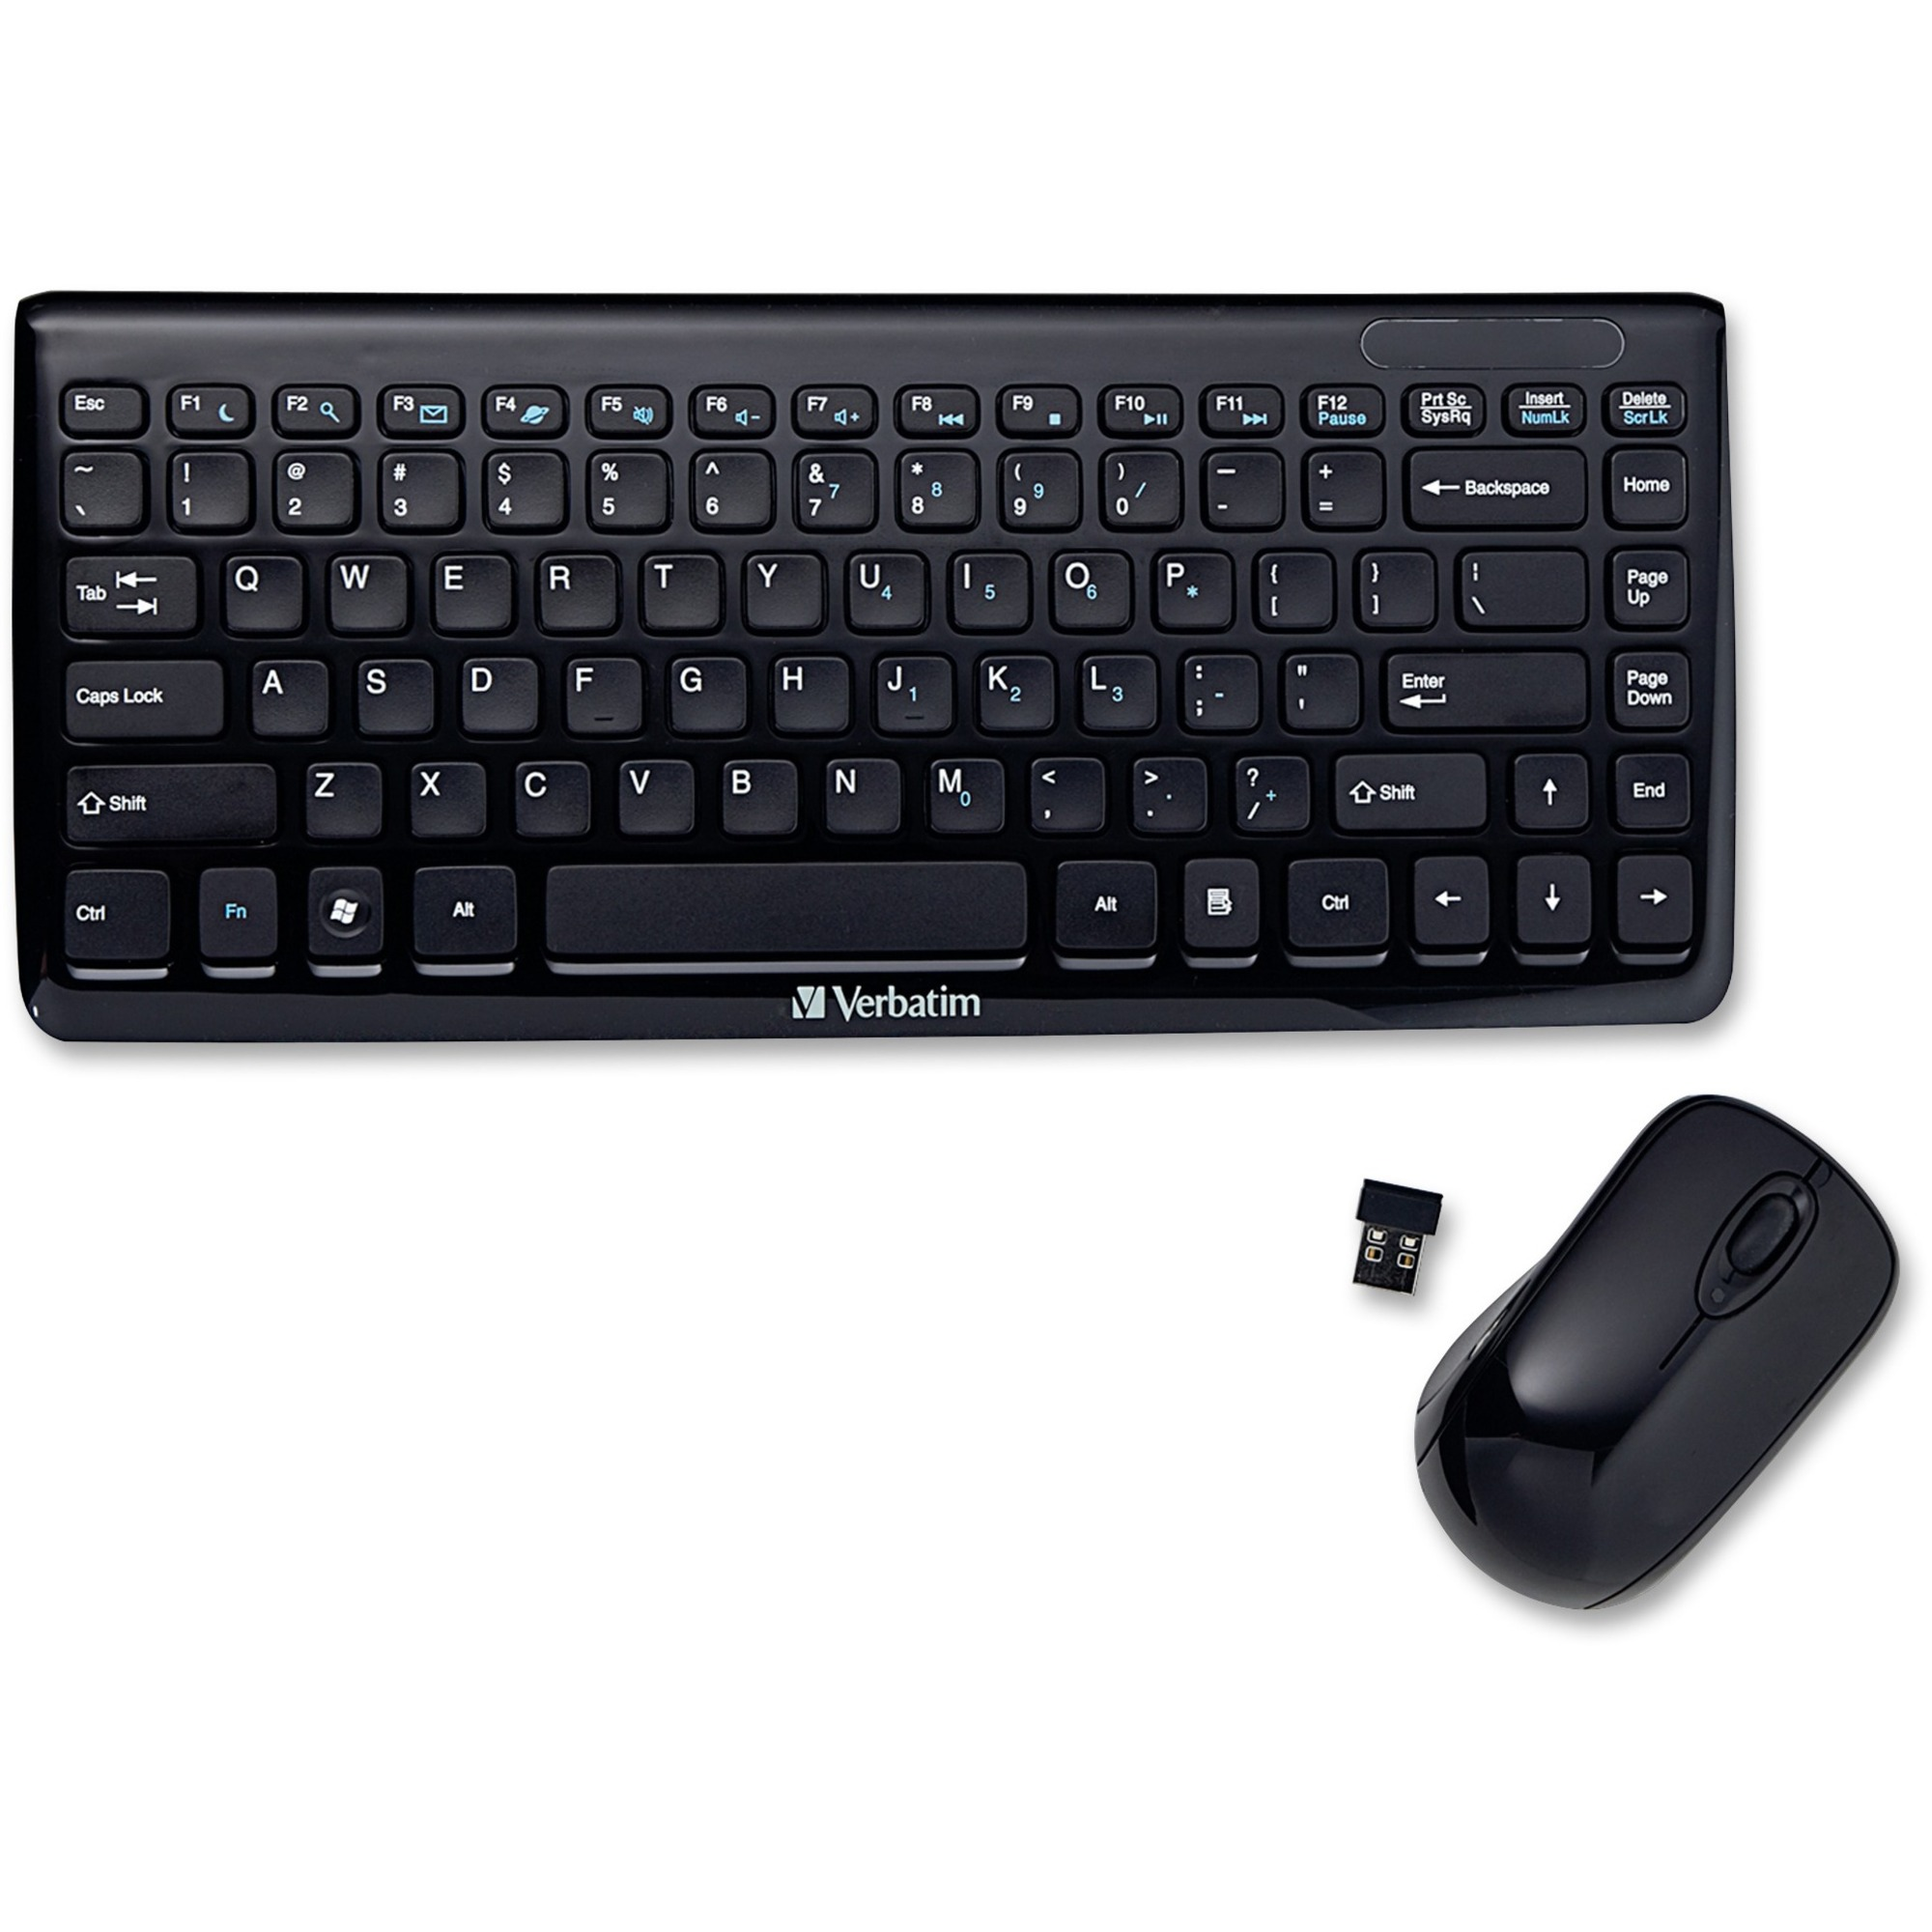 63ad415fcaf Verbatim 97472 Keyboard and Mouse - Madill - The Office Company